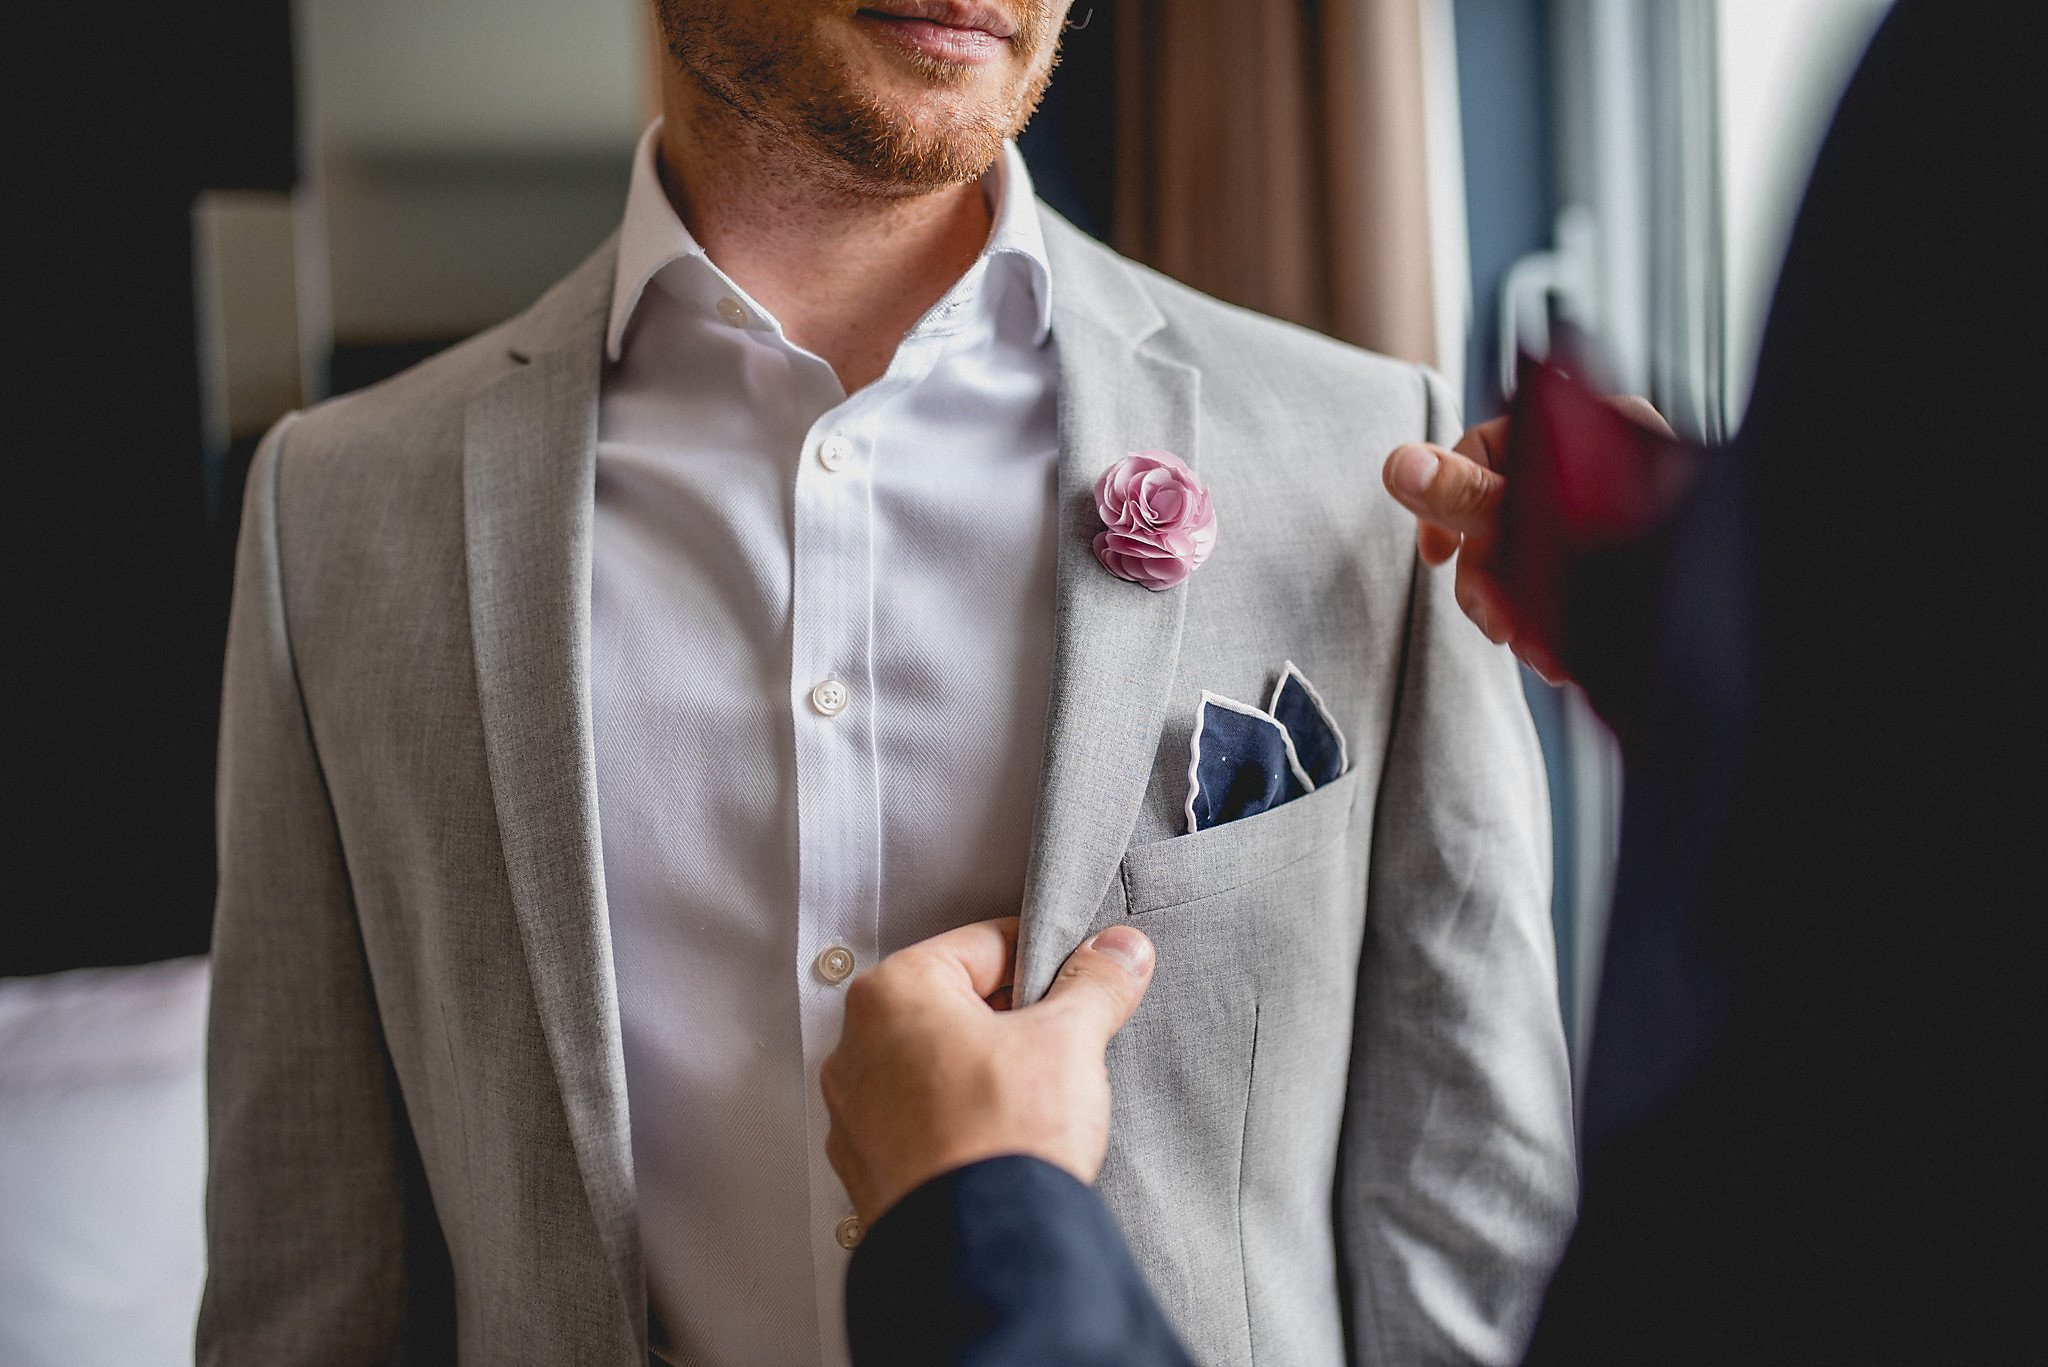 Straightening the lapel of the groom-to-be in pale grey suit and dark blue pocket square